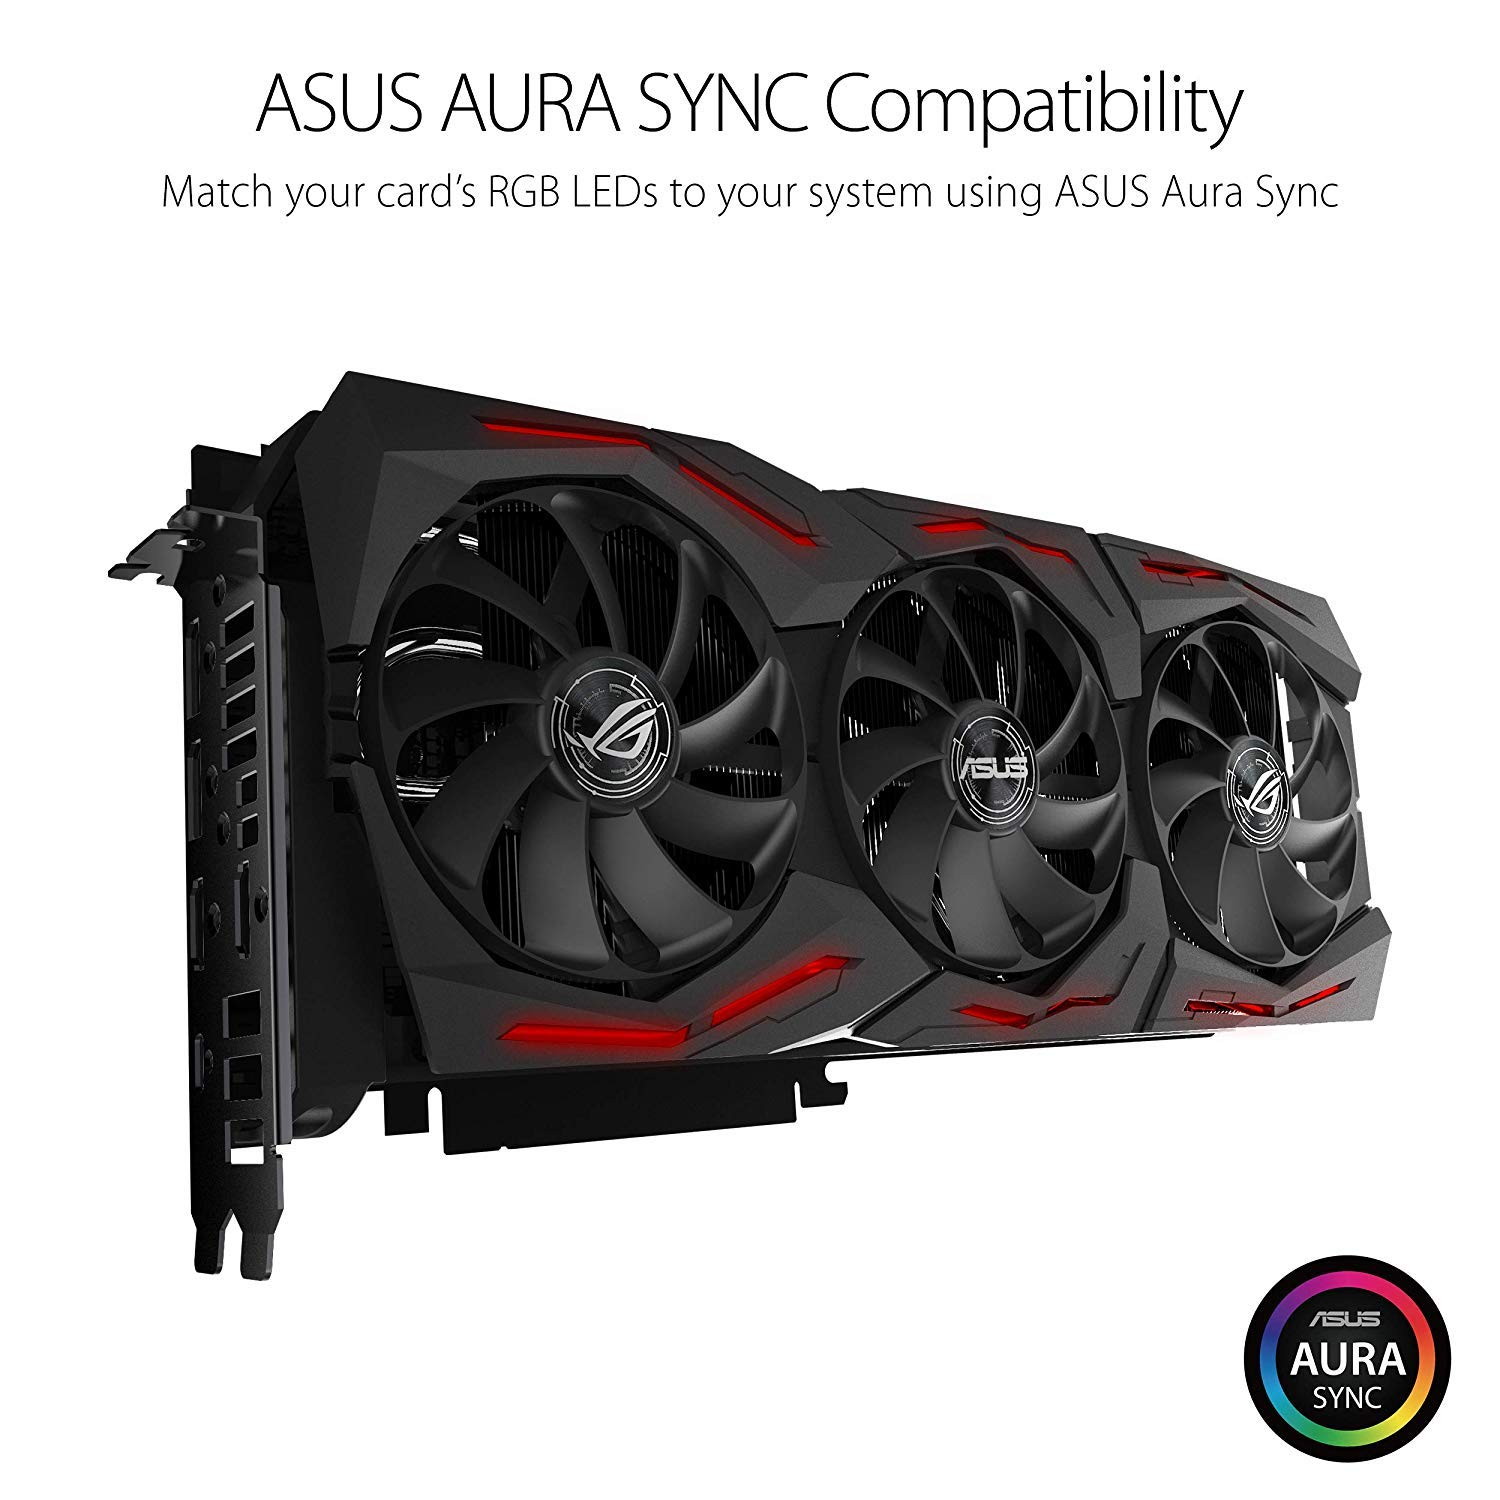 ASUS ROG Strix GeForce RTX 2080TI Overclocked 11G GDDR6 HDMI DP 1.4 USB Type-C Gaming Graphics Card (ROG-STRIX-RTX-2080TI-O11G) by ASUS (Image #3)